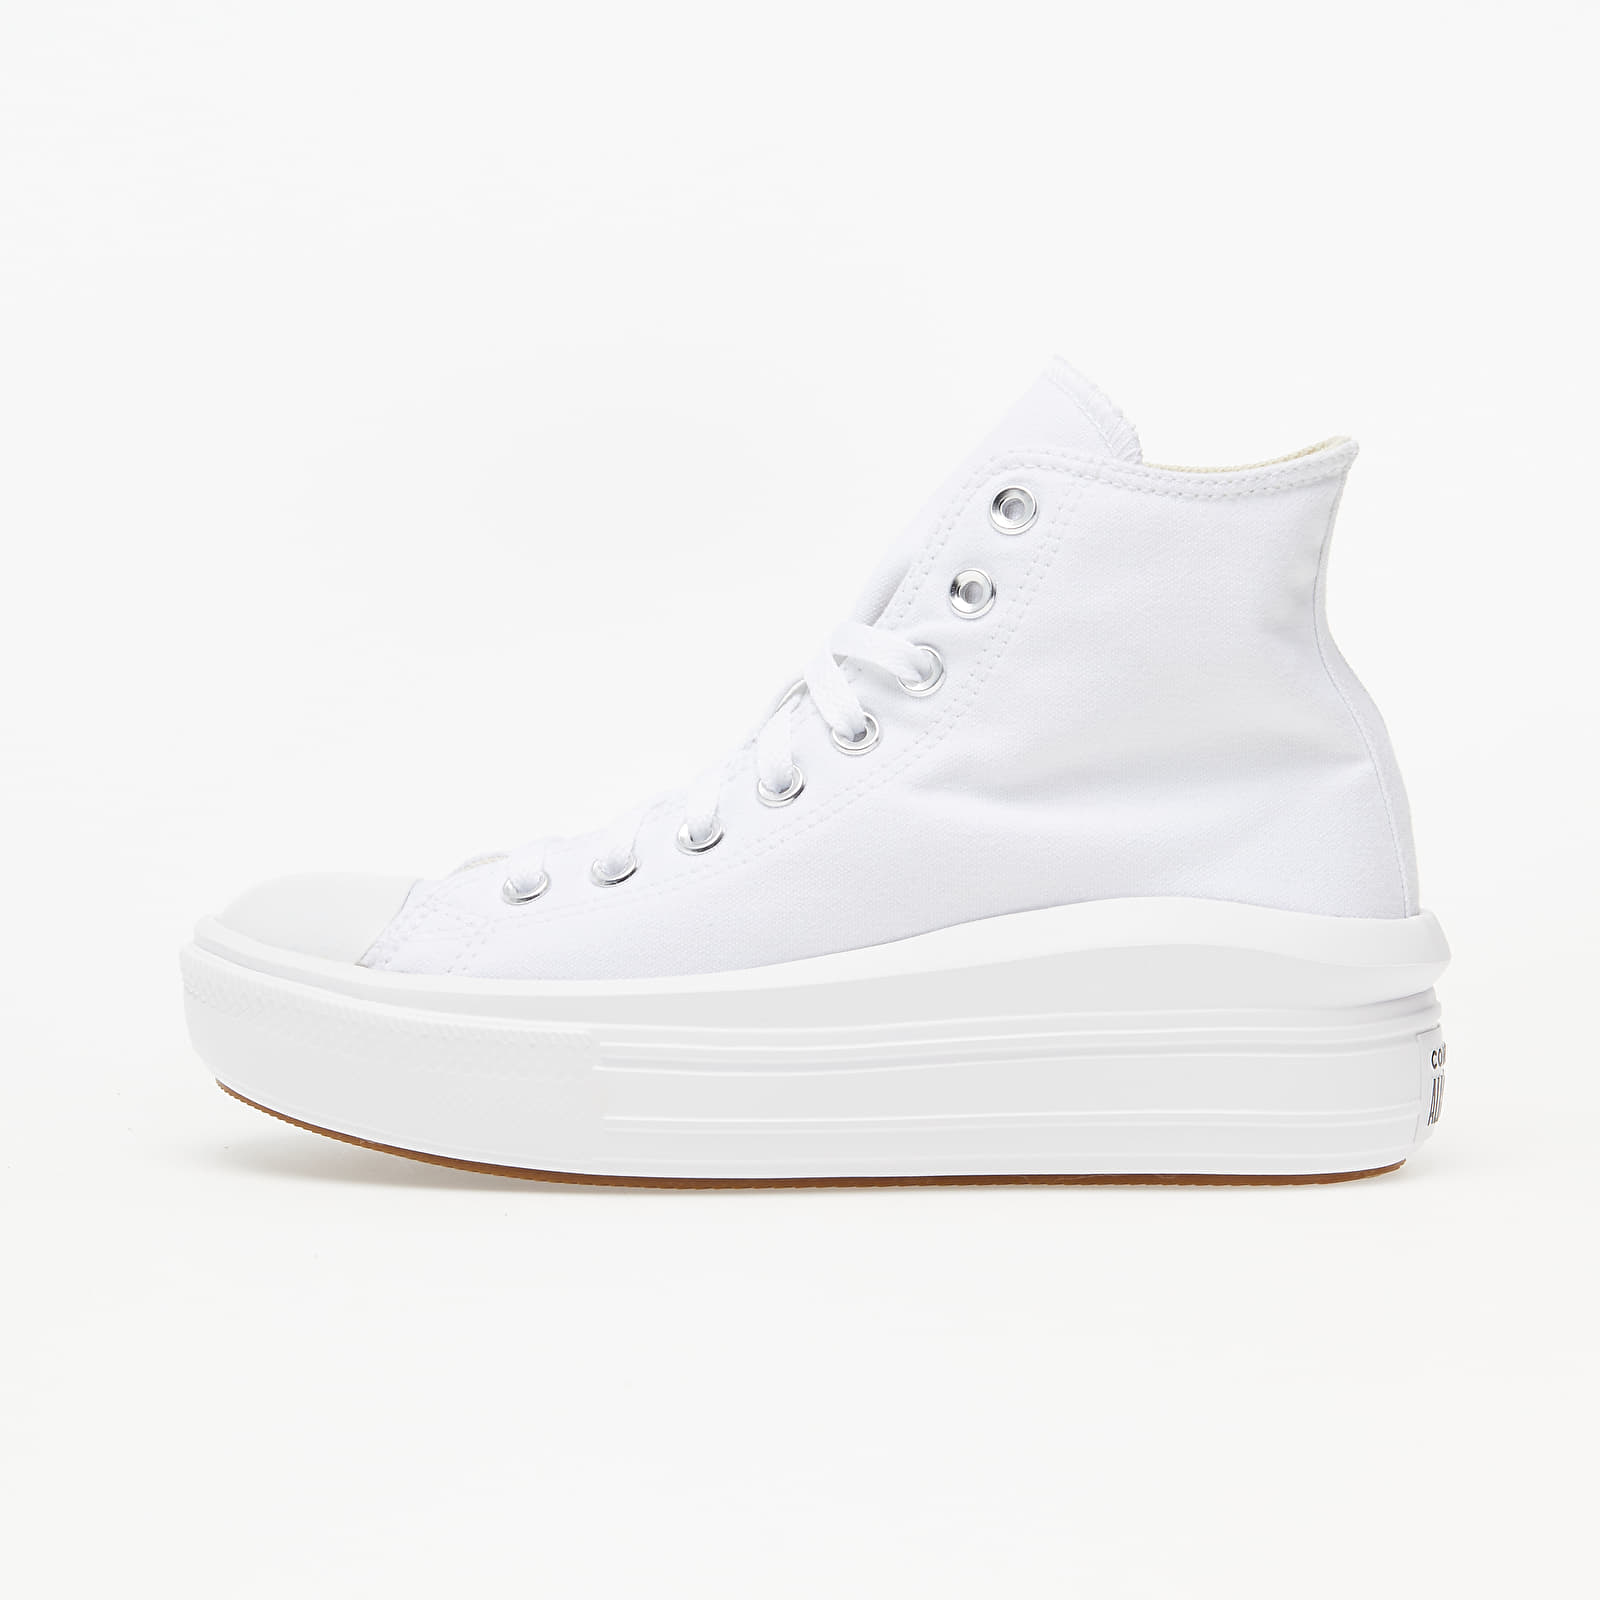 Converse Chuck Taylor All Star Move White/ Natural Ivory/ Black EUR 37.5